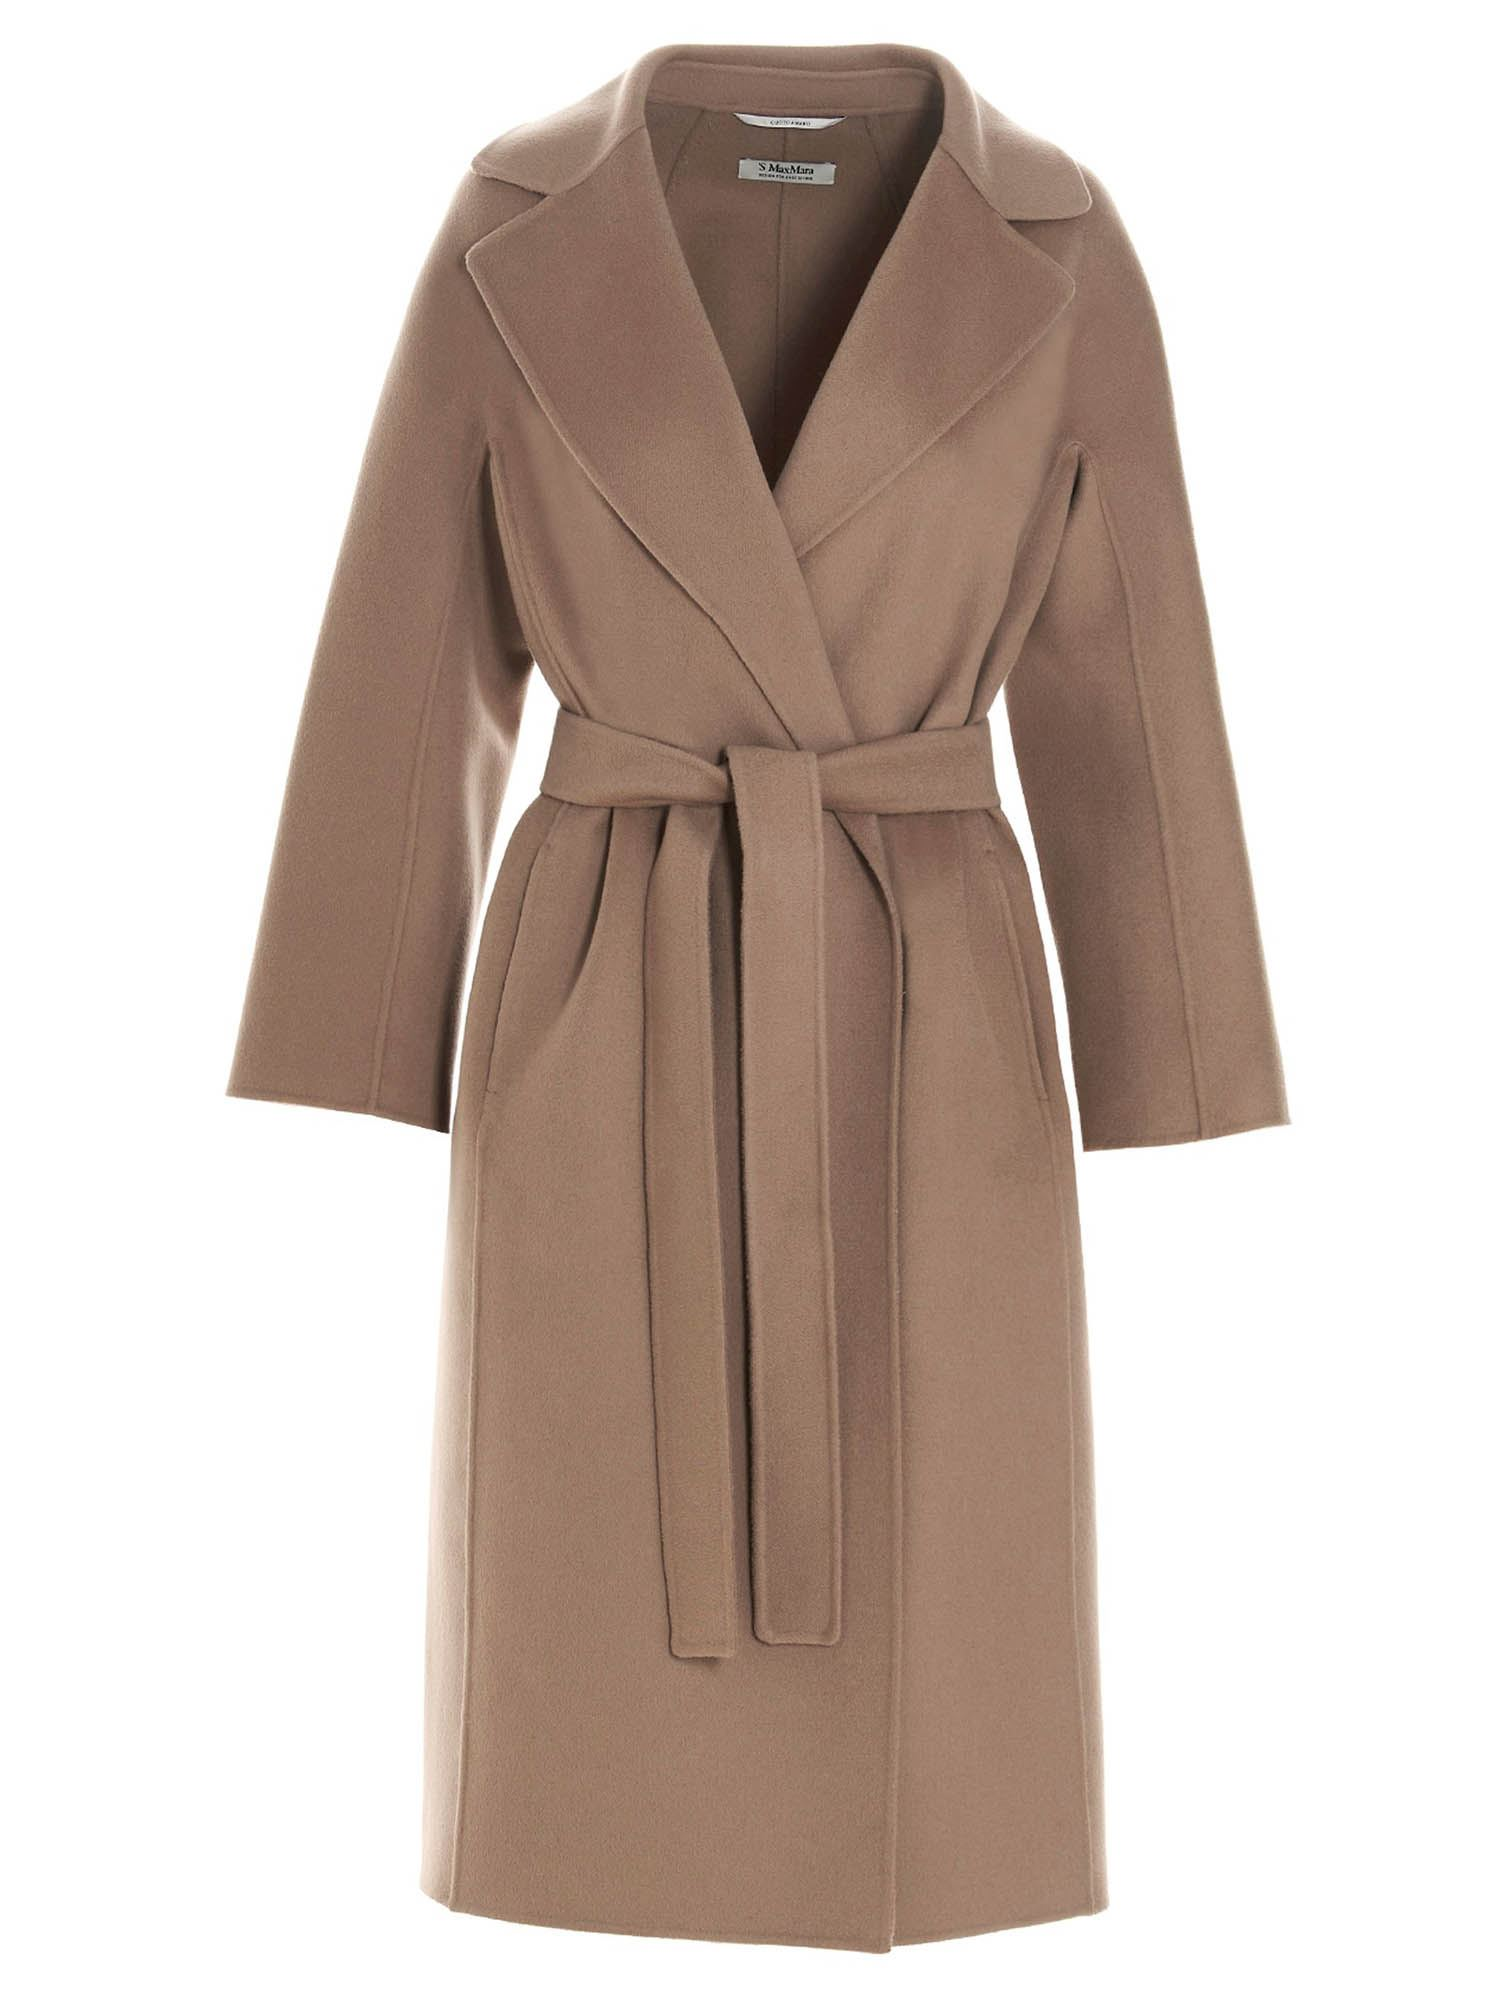 Max Mara ARIA COAT IN CAMEL COLOR